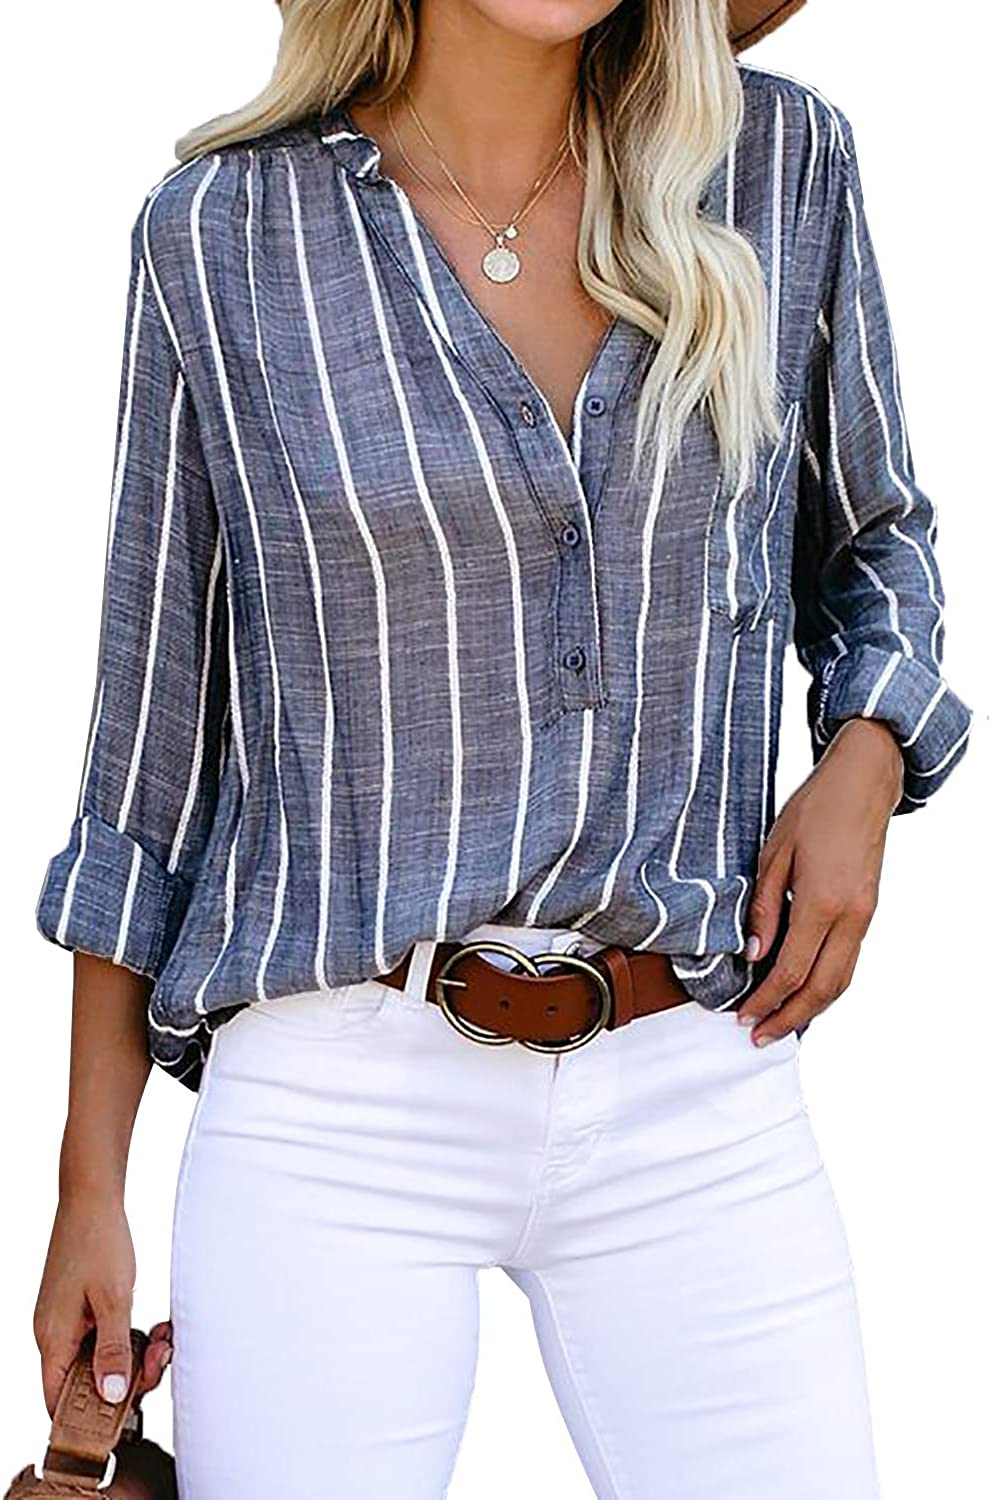 ROSKIKI Womens Casual Long Sleeve Shirts Henley V Neck Striped Blouse Loose Tunic Tops with Pockets S-XXL